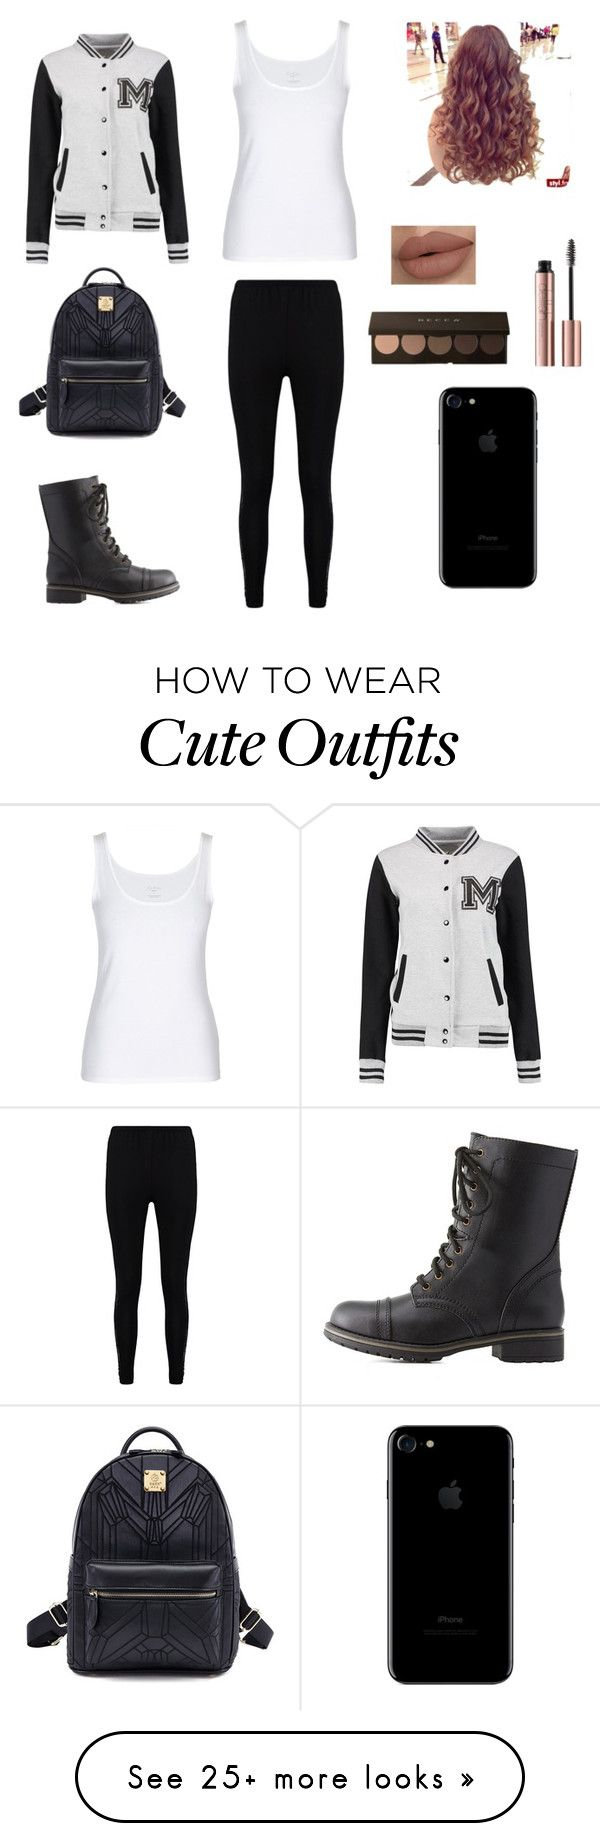 """Cute varsity jacket outfit"" by stuff4m on Polyvore featuring Charlotte Russe and Boohoo"